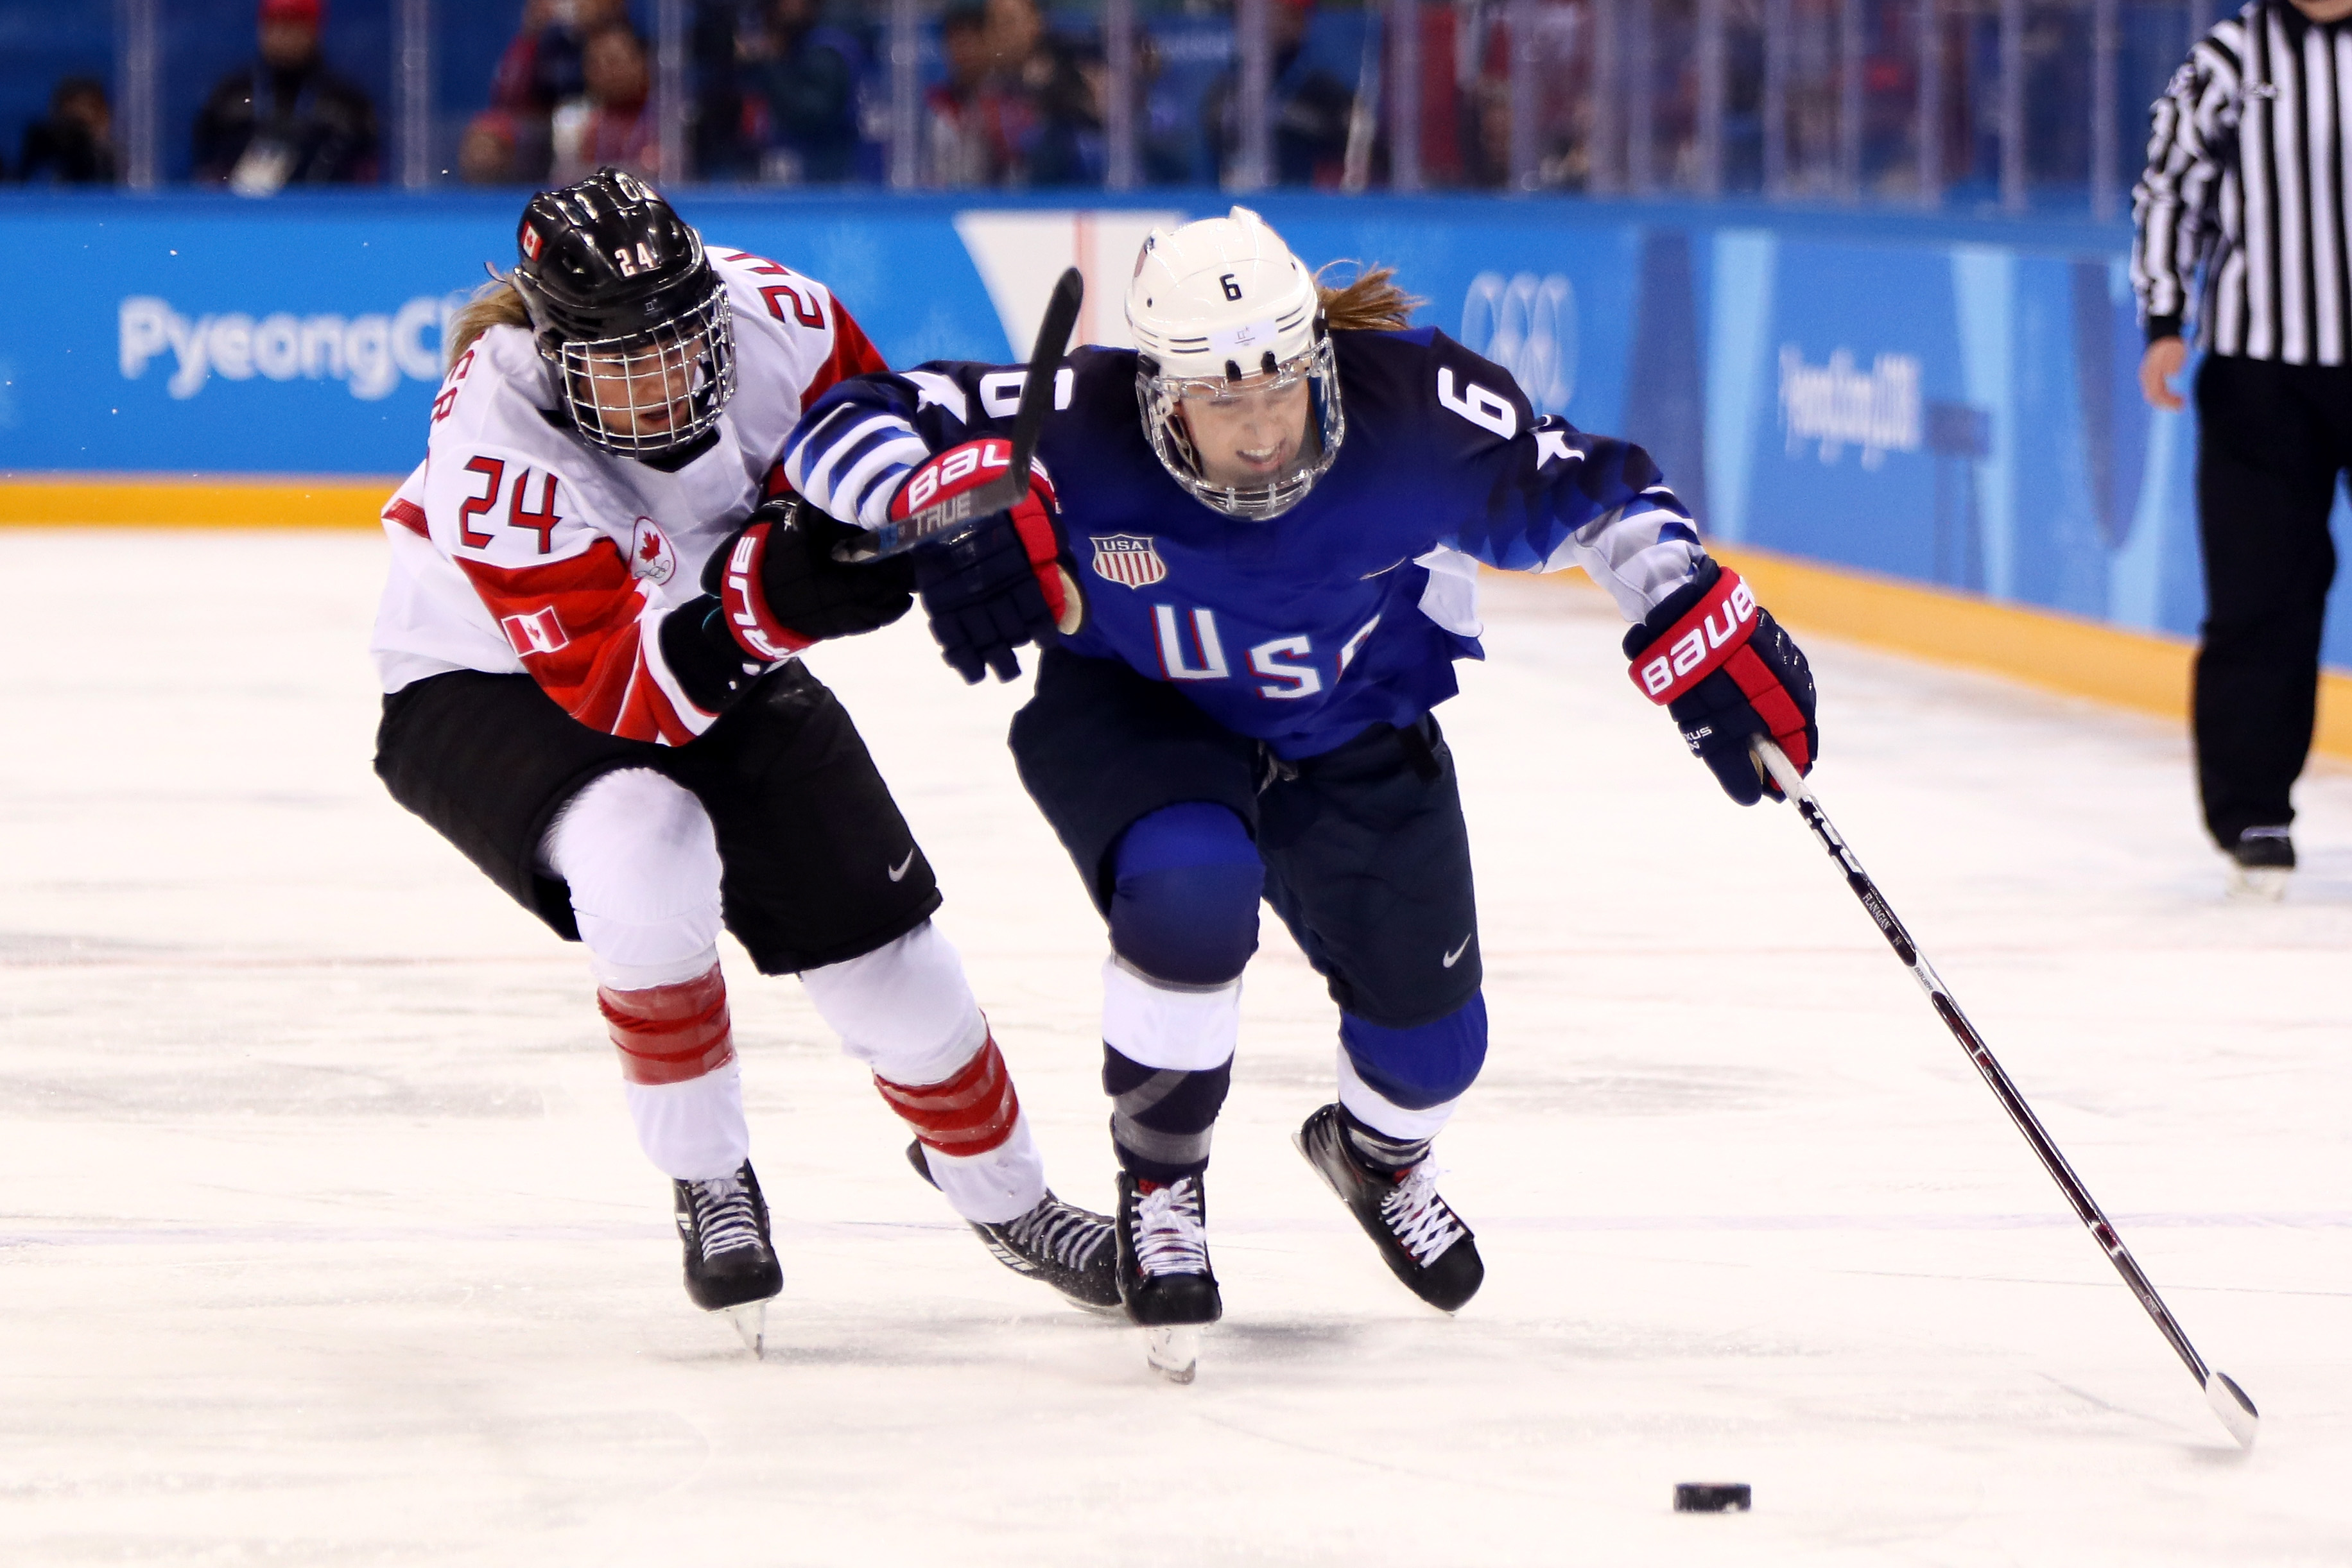 Kali Flanagan #6 of the United States controls the puck against Natalie Spooner #24 of Canada